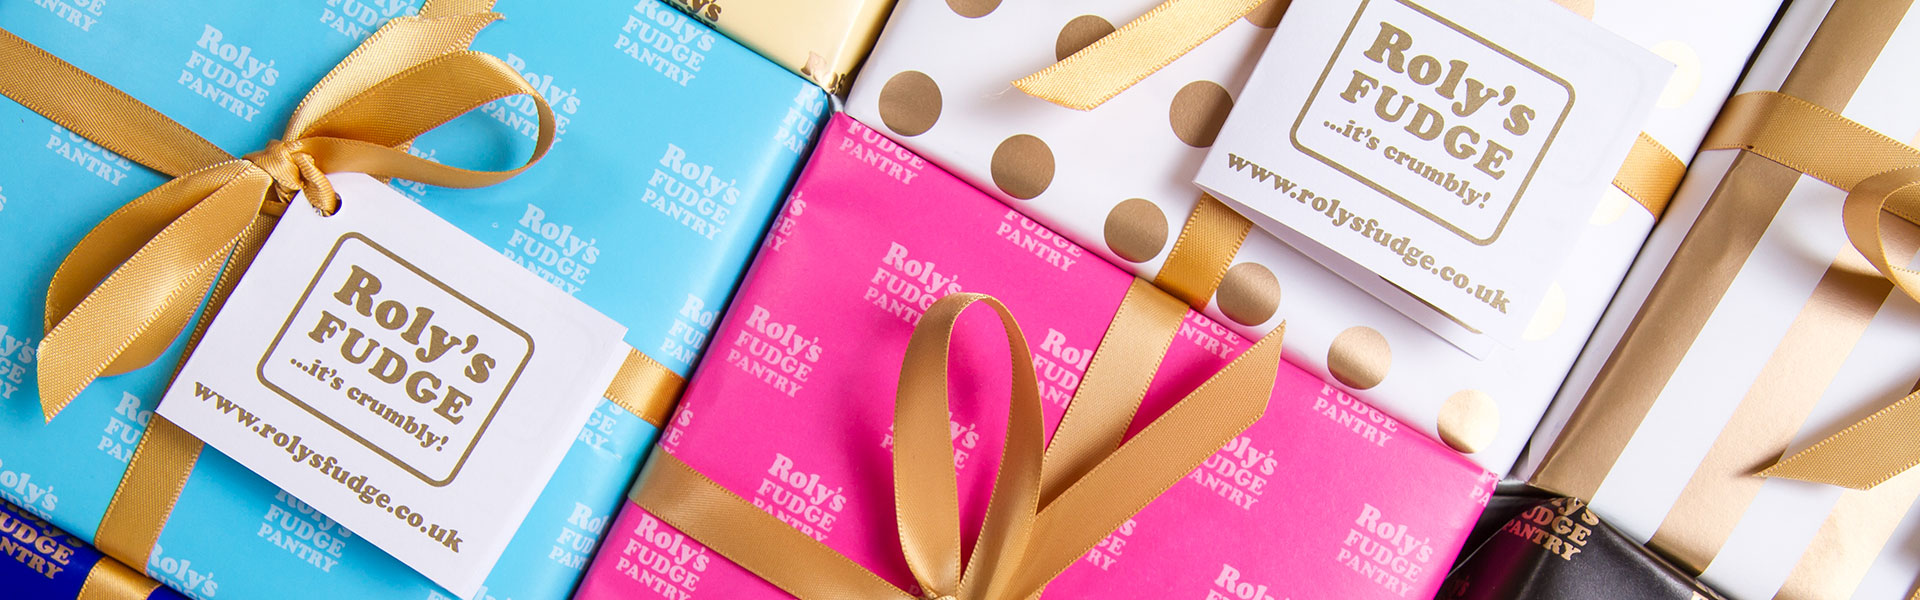 Fudge boxes